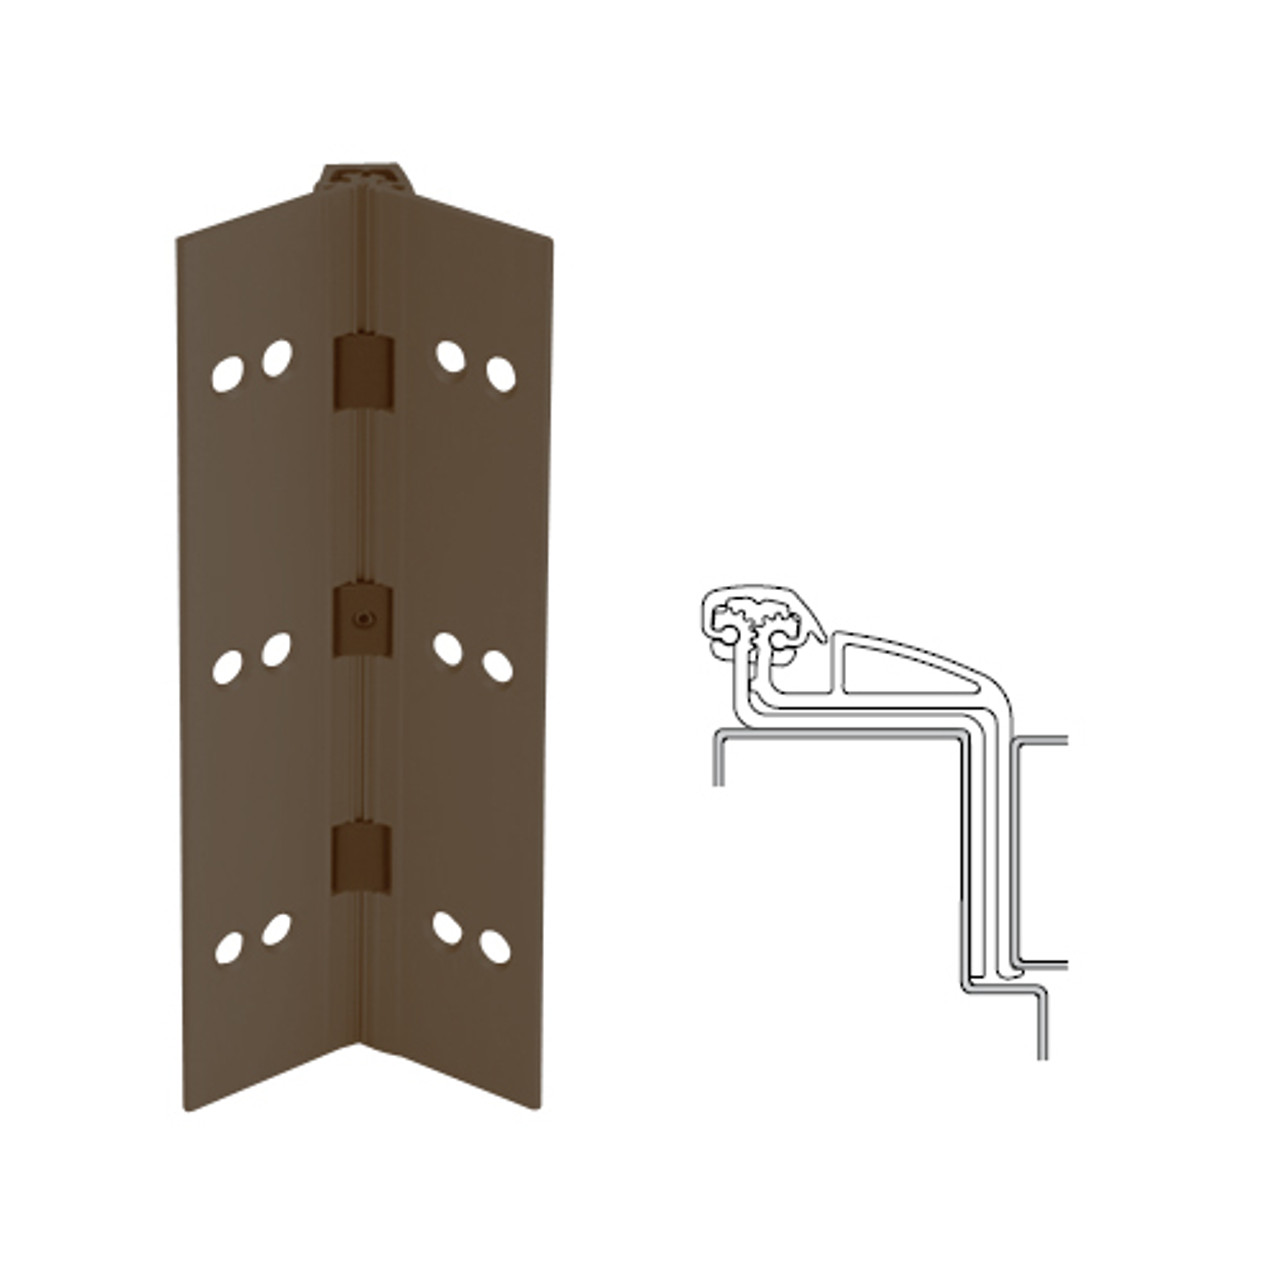 041XY-313AN-120-TF IVES Full Mortise Continuous Geared Hinges with Thread Forming Screws in Dark Bronze Anodized